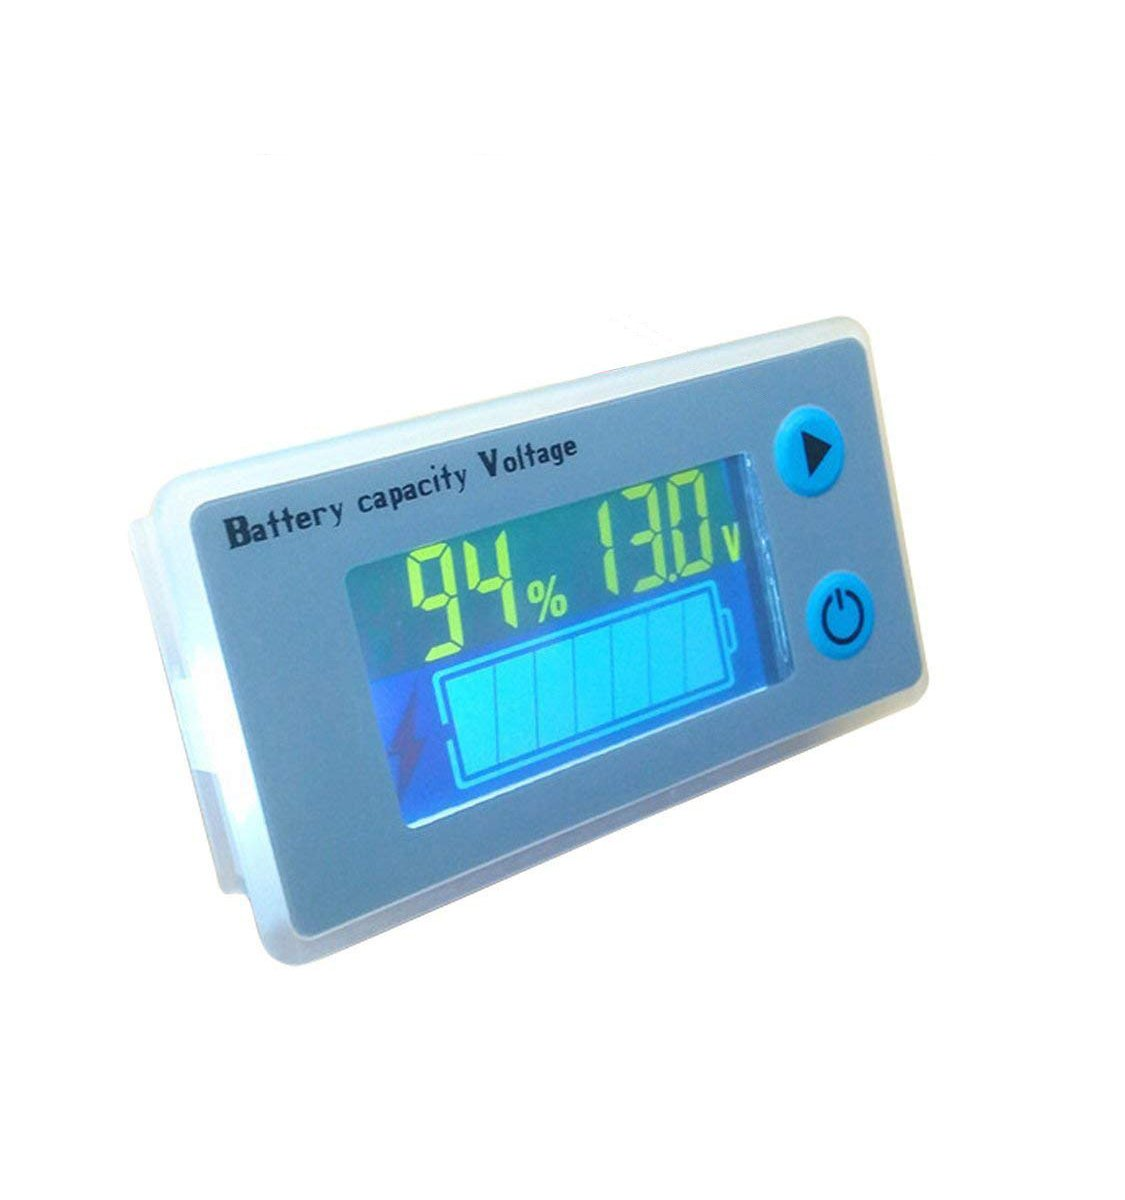 CPTDCL Multifunction 12V LCD Lead Acid Battery Capacity Meter Voltmeter with Temperature Display Battery Fuel Gauge Indicator Voltage Monitor